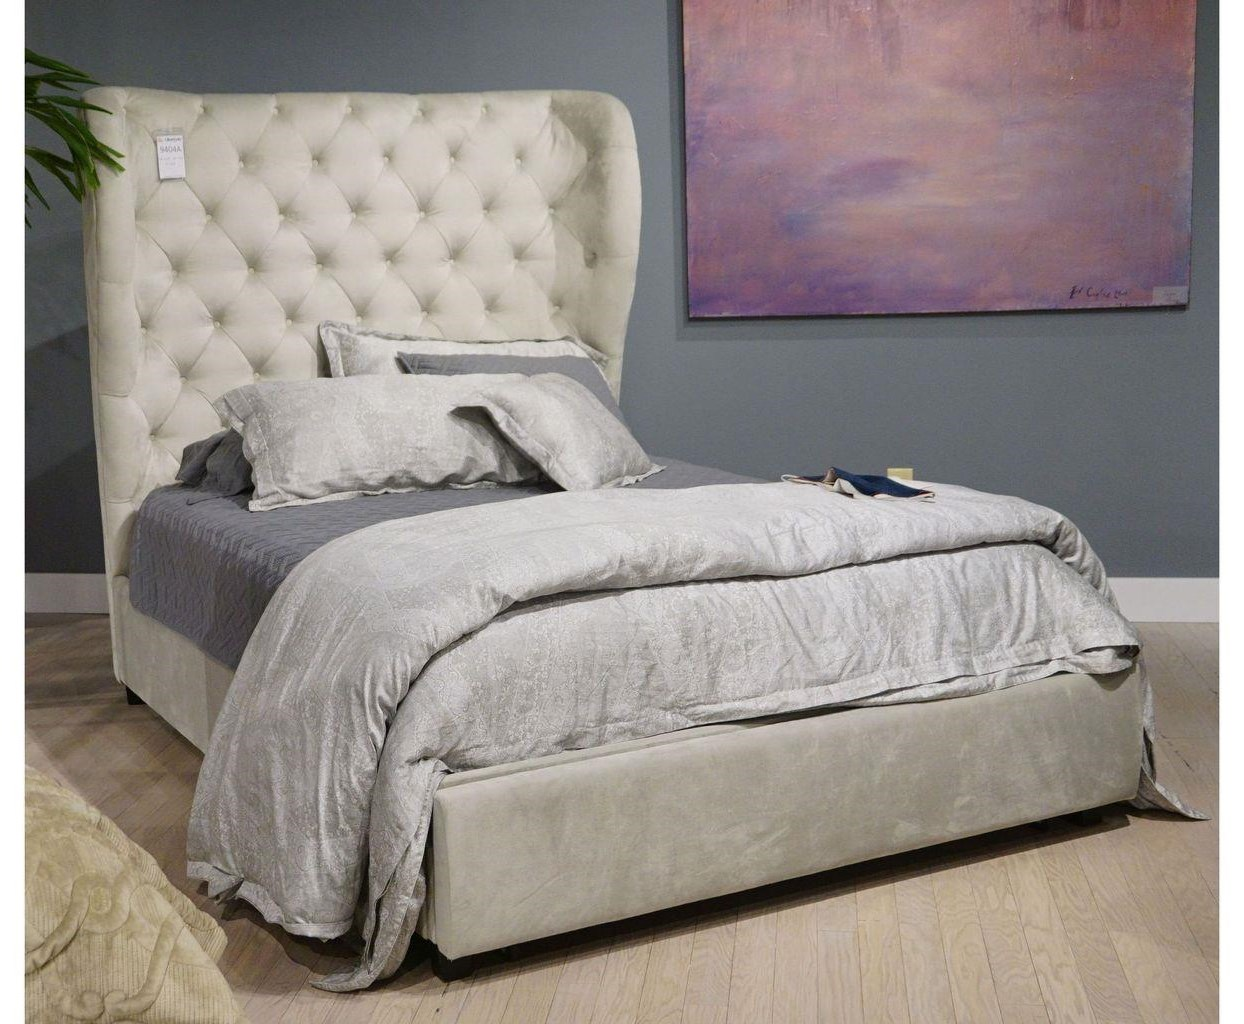 C9404 King Size upholstered bed by Lifestyle at Furniture Fair - North Carolina